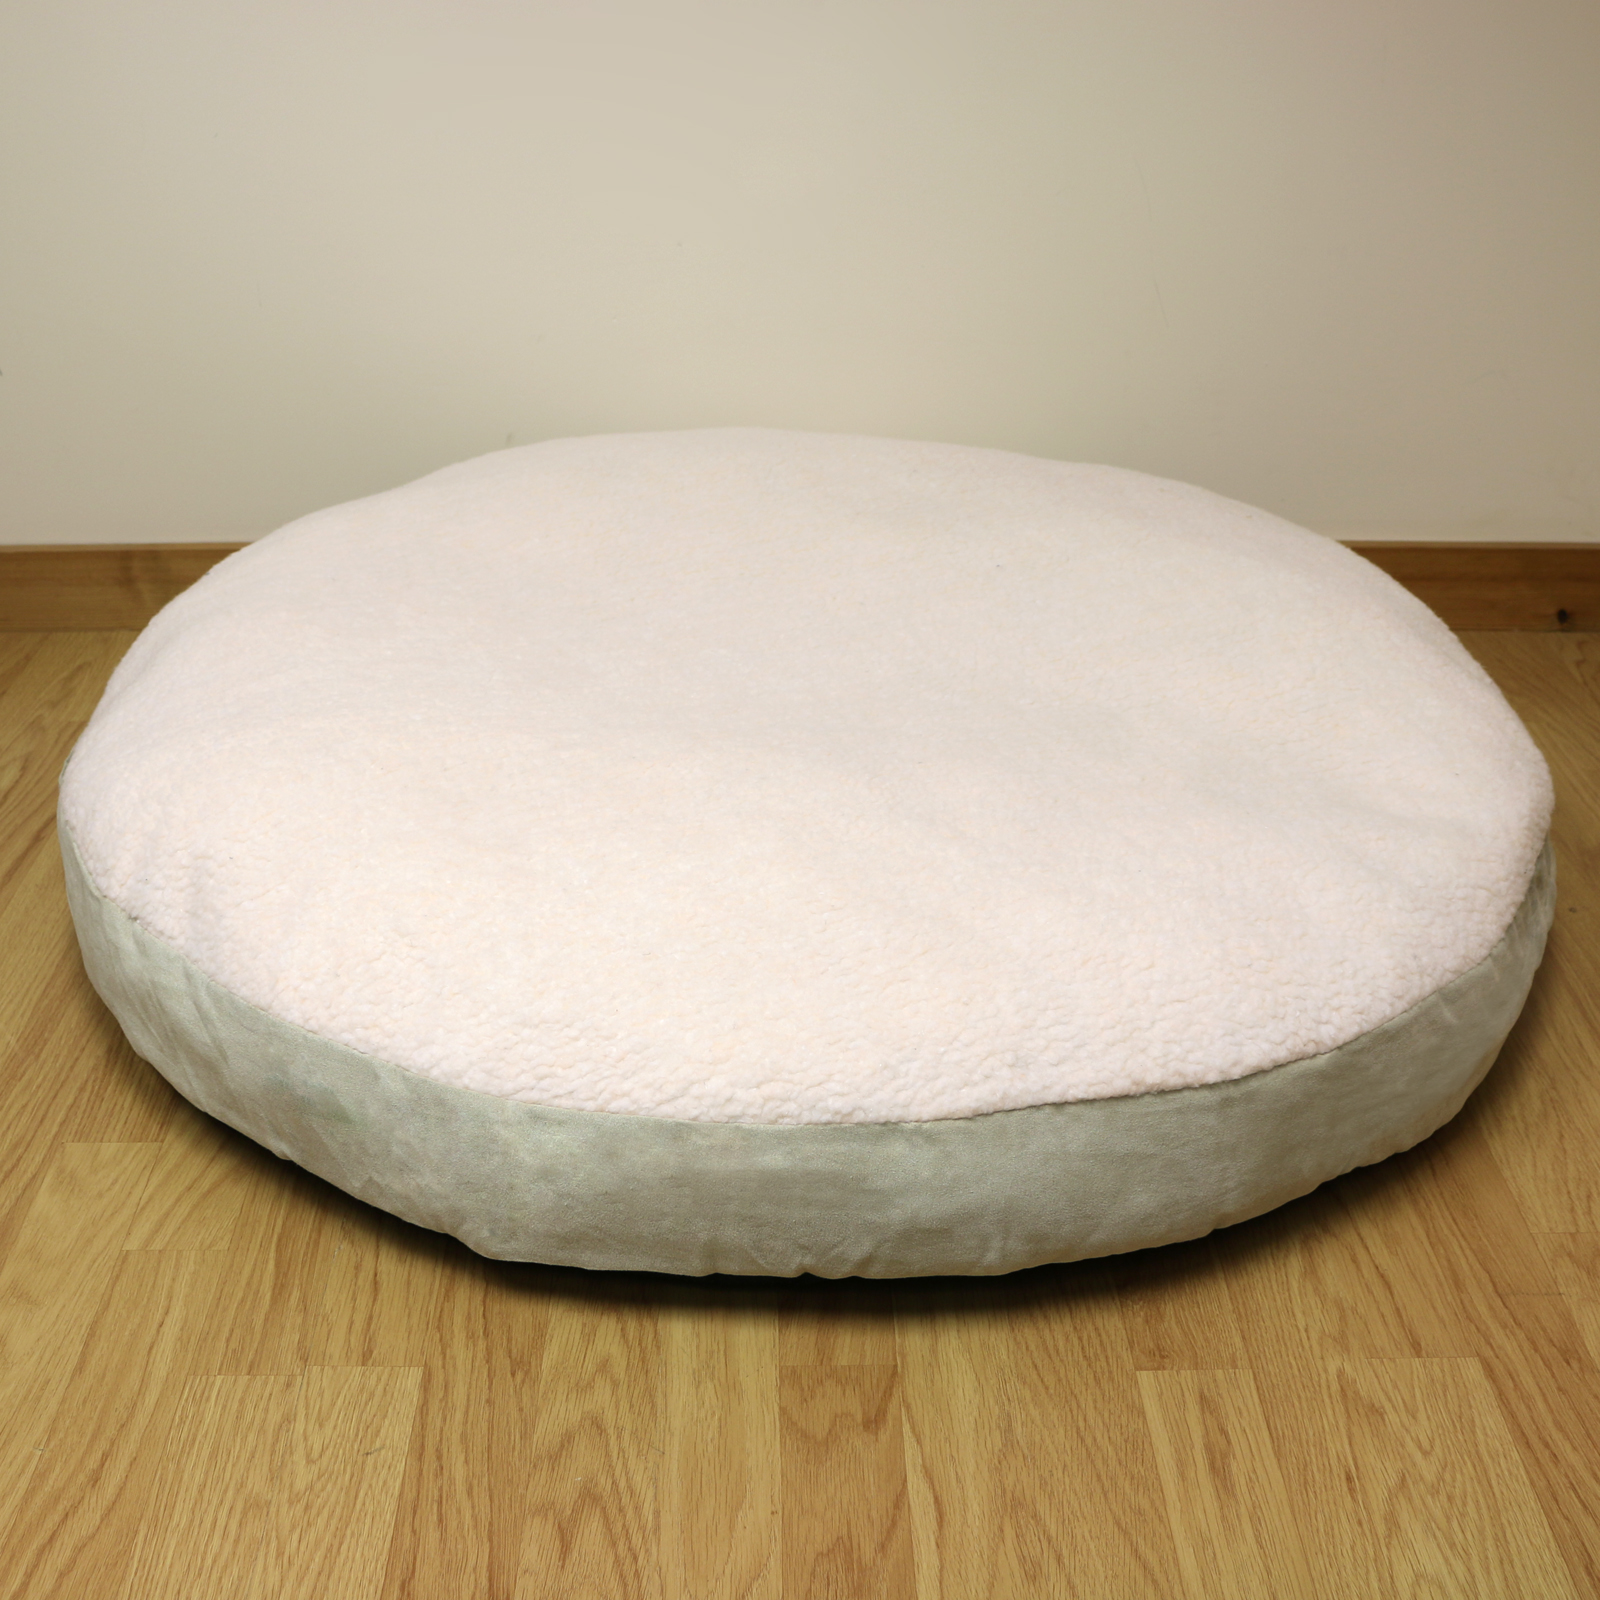 Big Round Floor Cushions : XXL Extra Large Circular Fleece Dog Pet Bed/Round/Cushion/Pillow/Soft/Cosy 102cm eBay